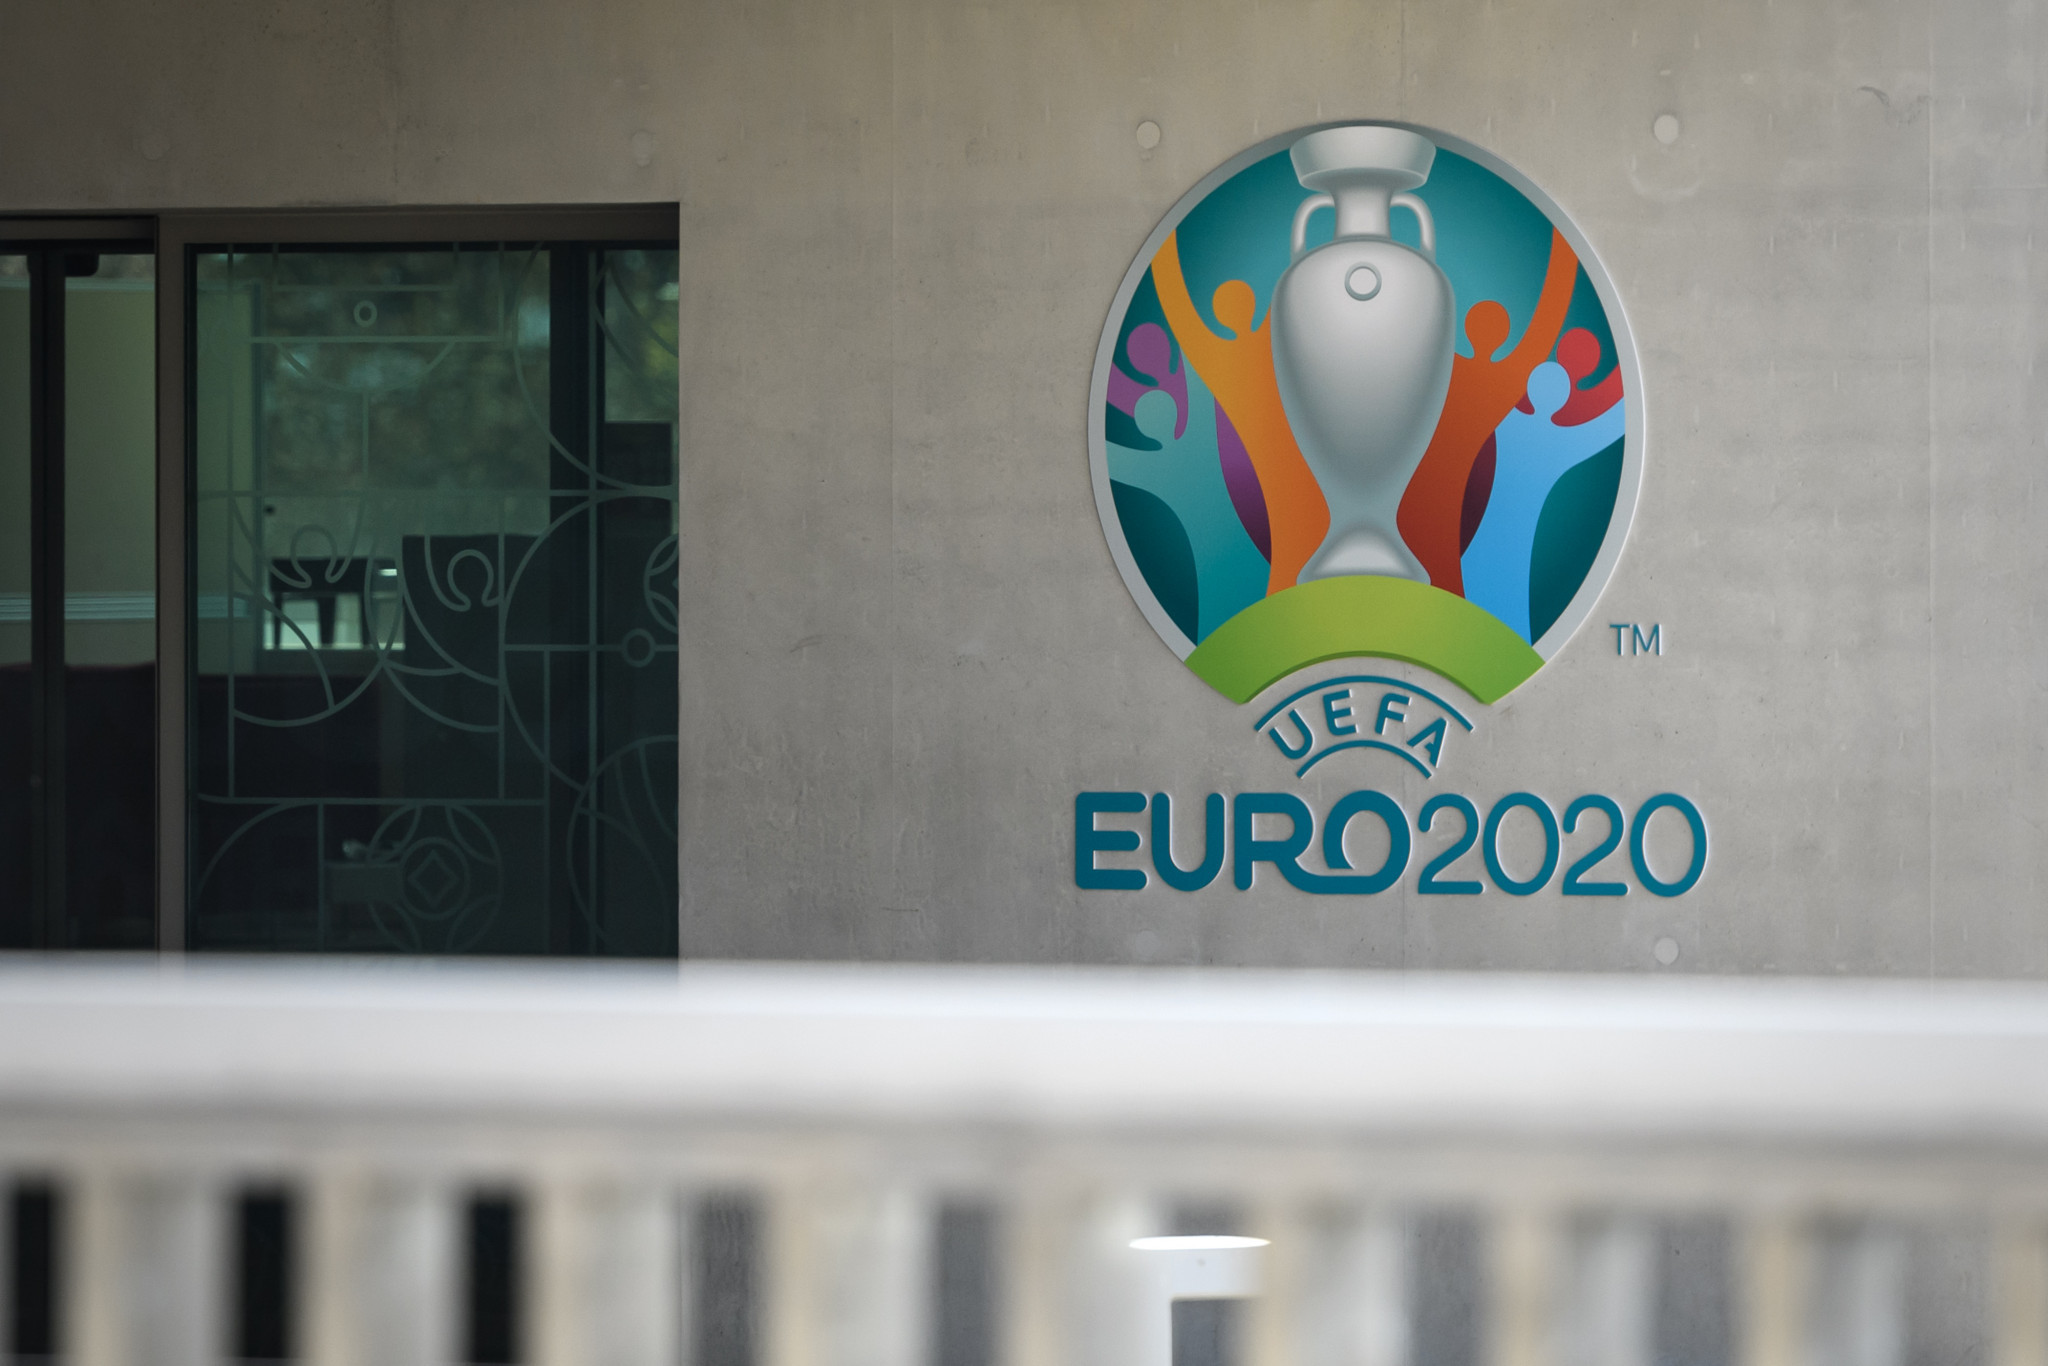 Investigation continues into UEFA employees detained in run-up to Euro 2020